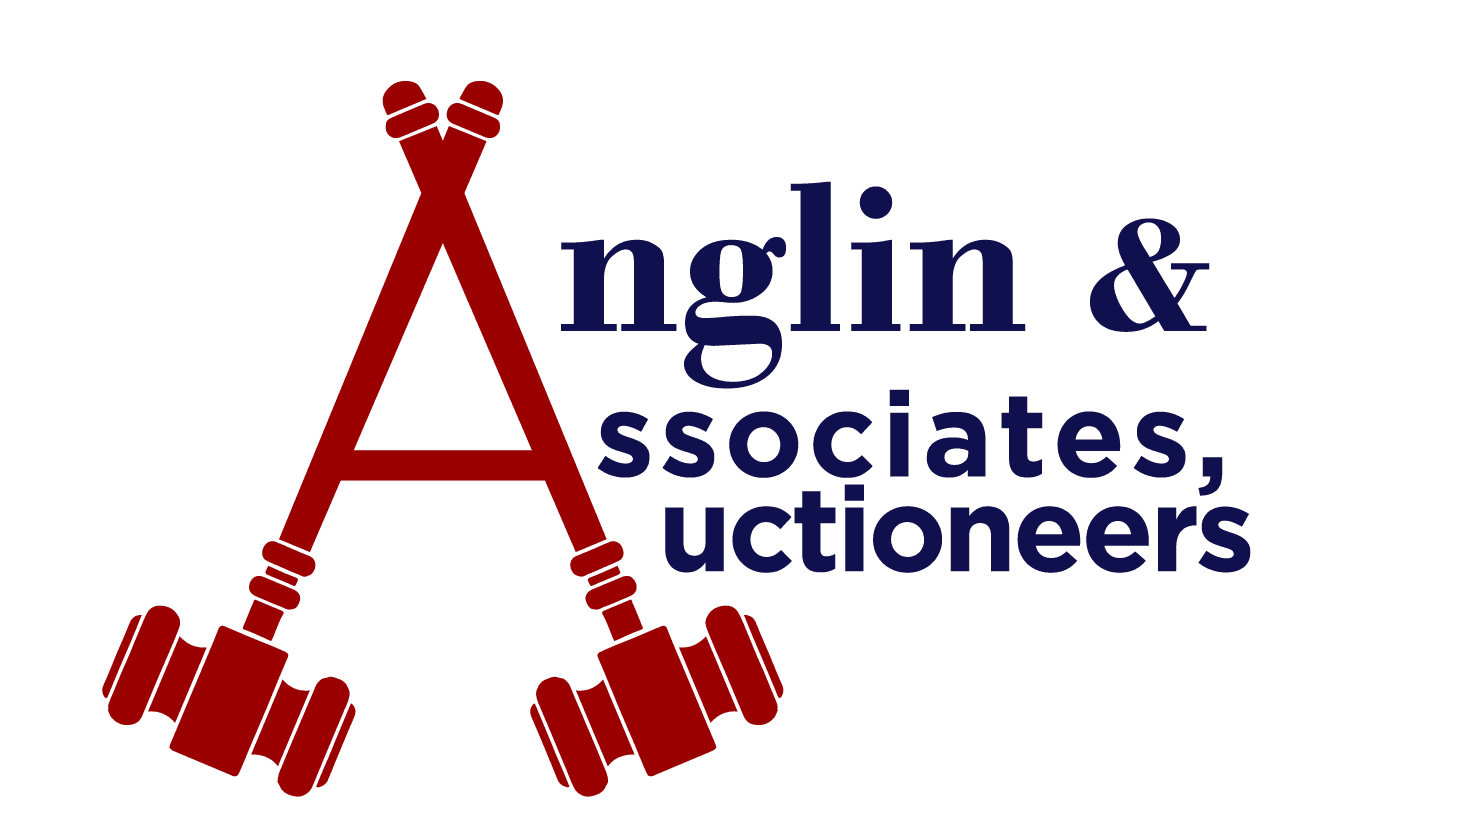 Anglin & Associate, Auctioneers